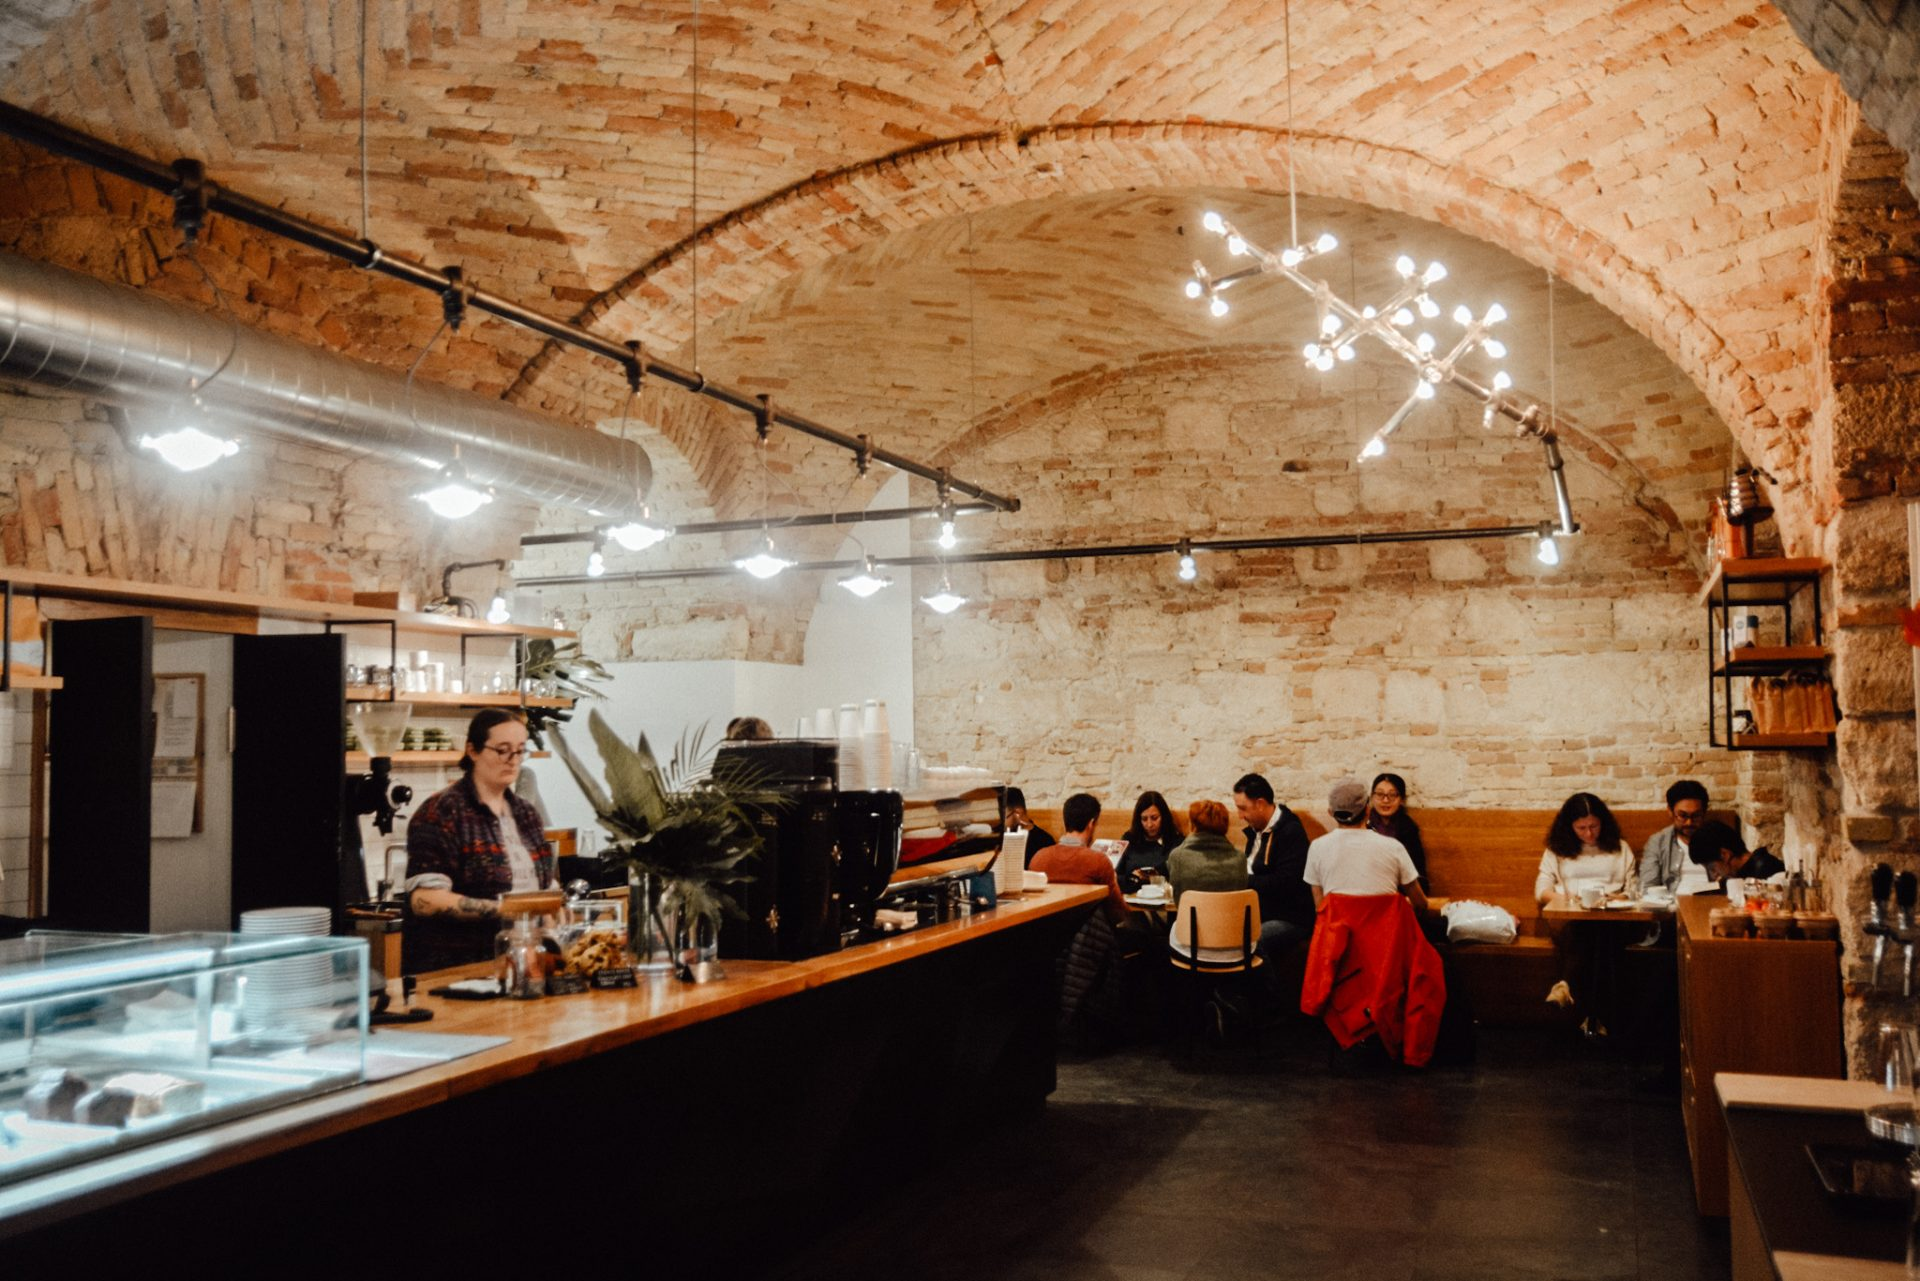 7 Cafes You Must Visit in Budapest